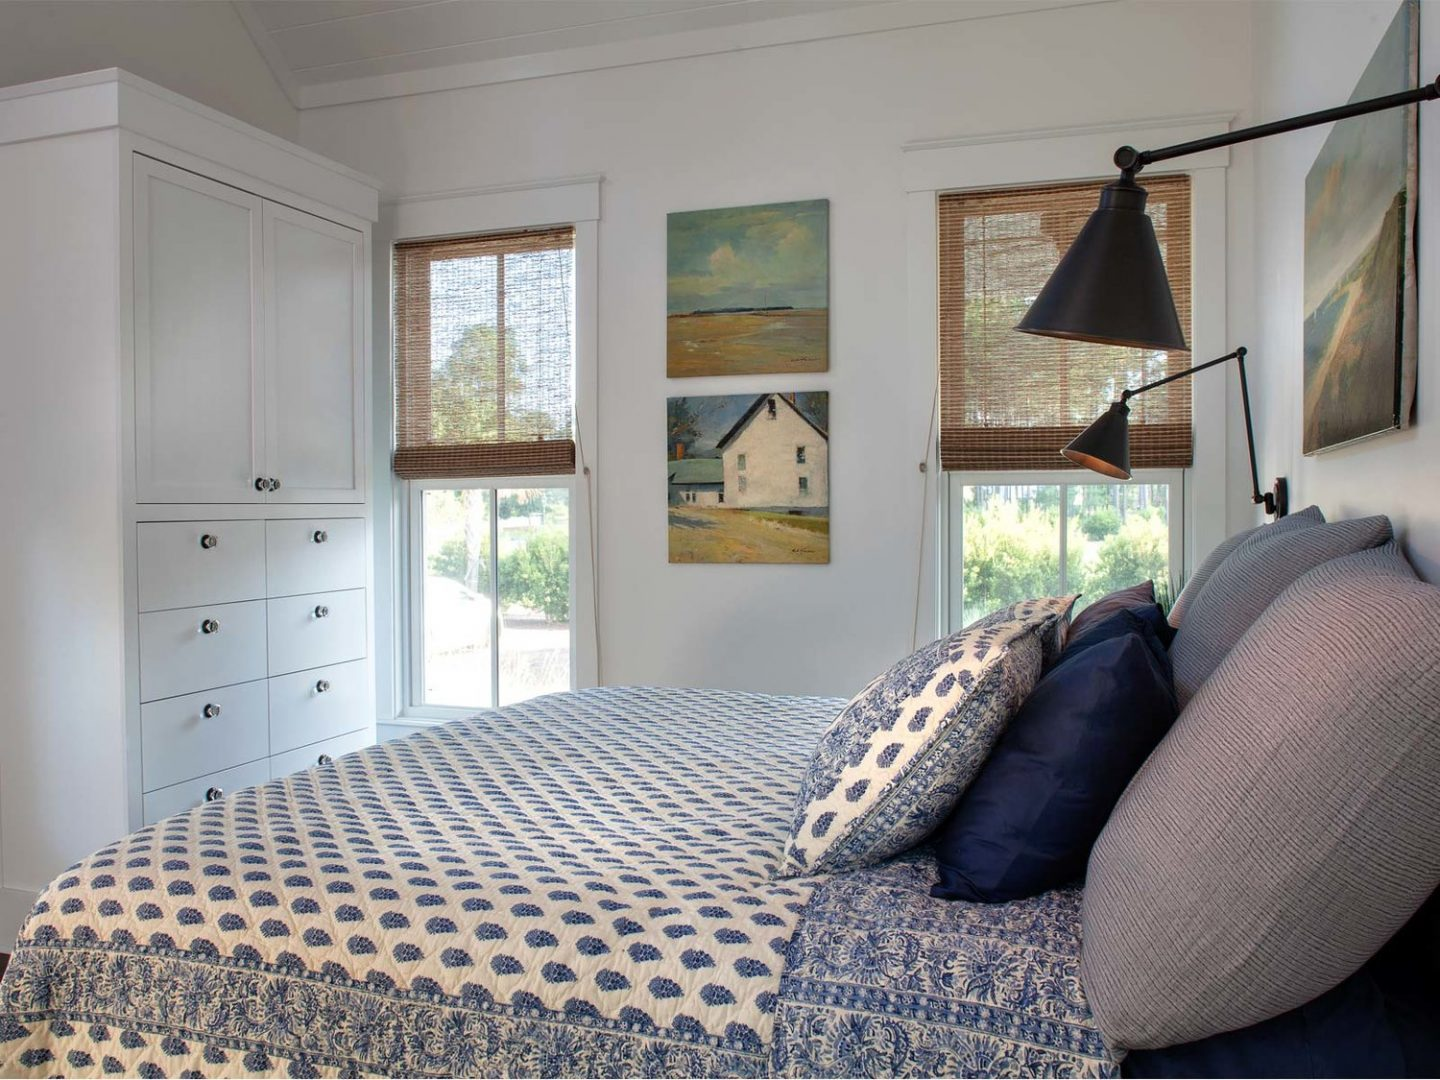 Blue and white coastal bedroom. Board and batten coastal cottage in Palmetto Bluff with modern farmhouse interior design by Lisa Furey.